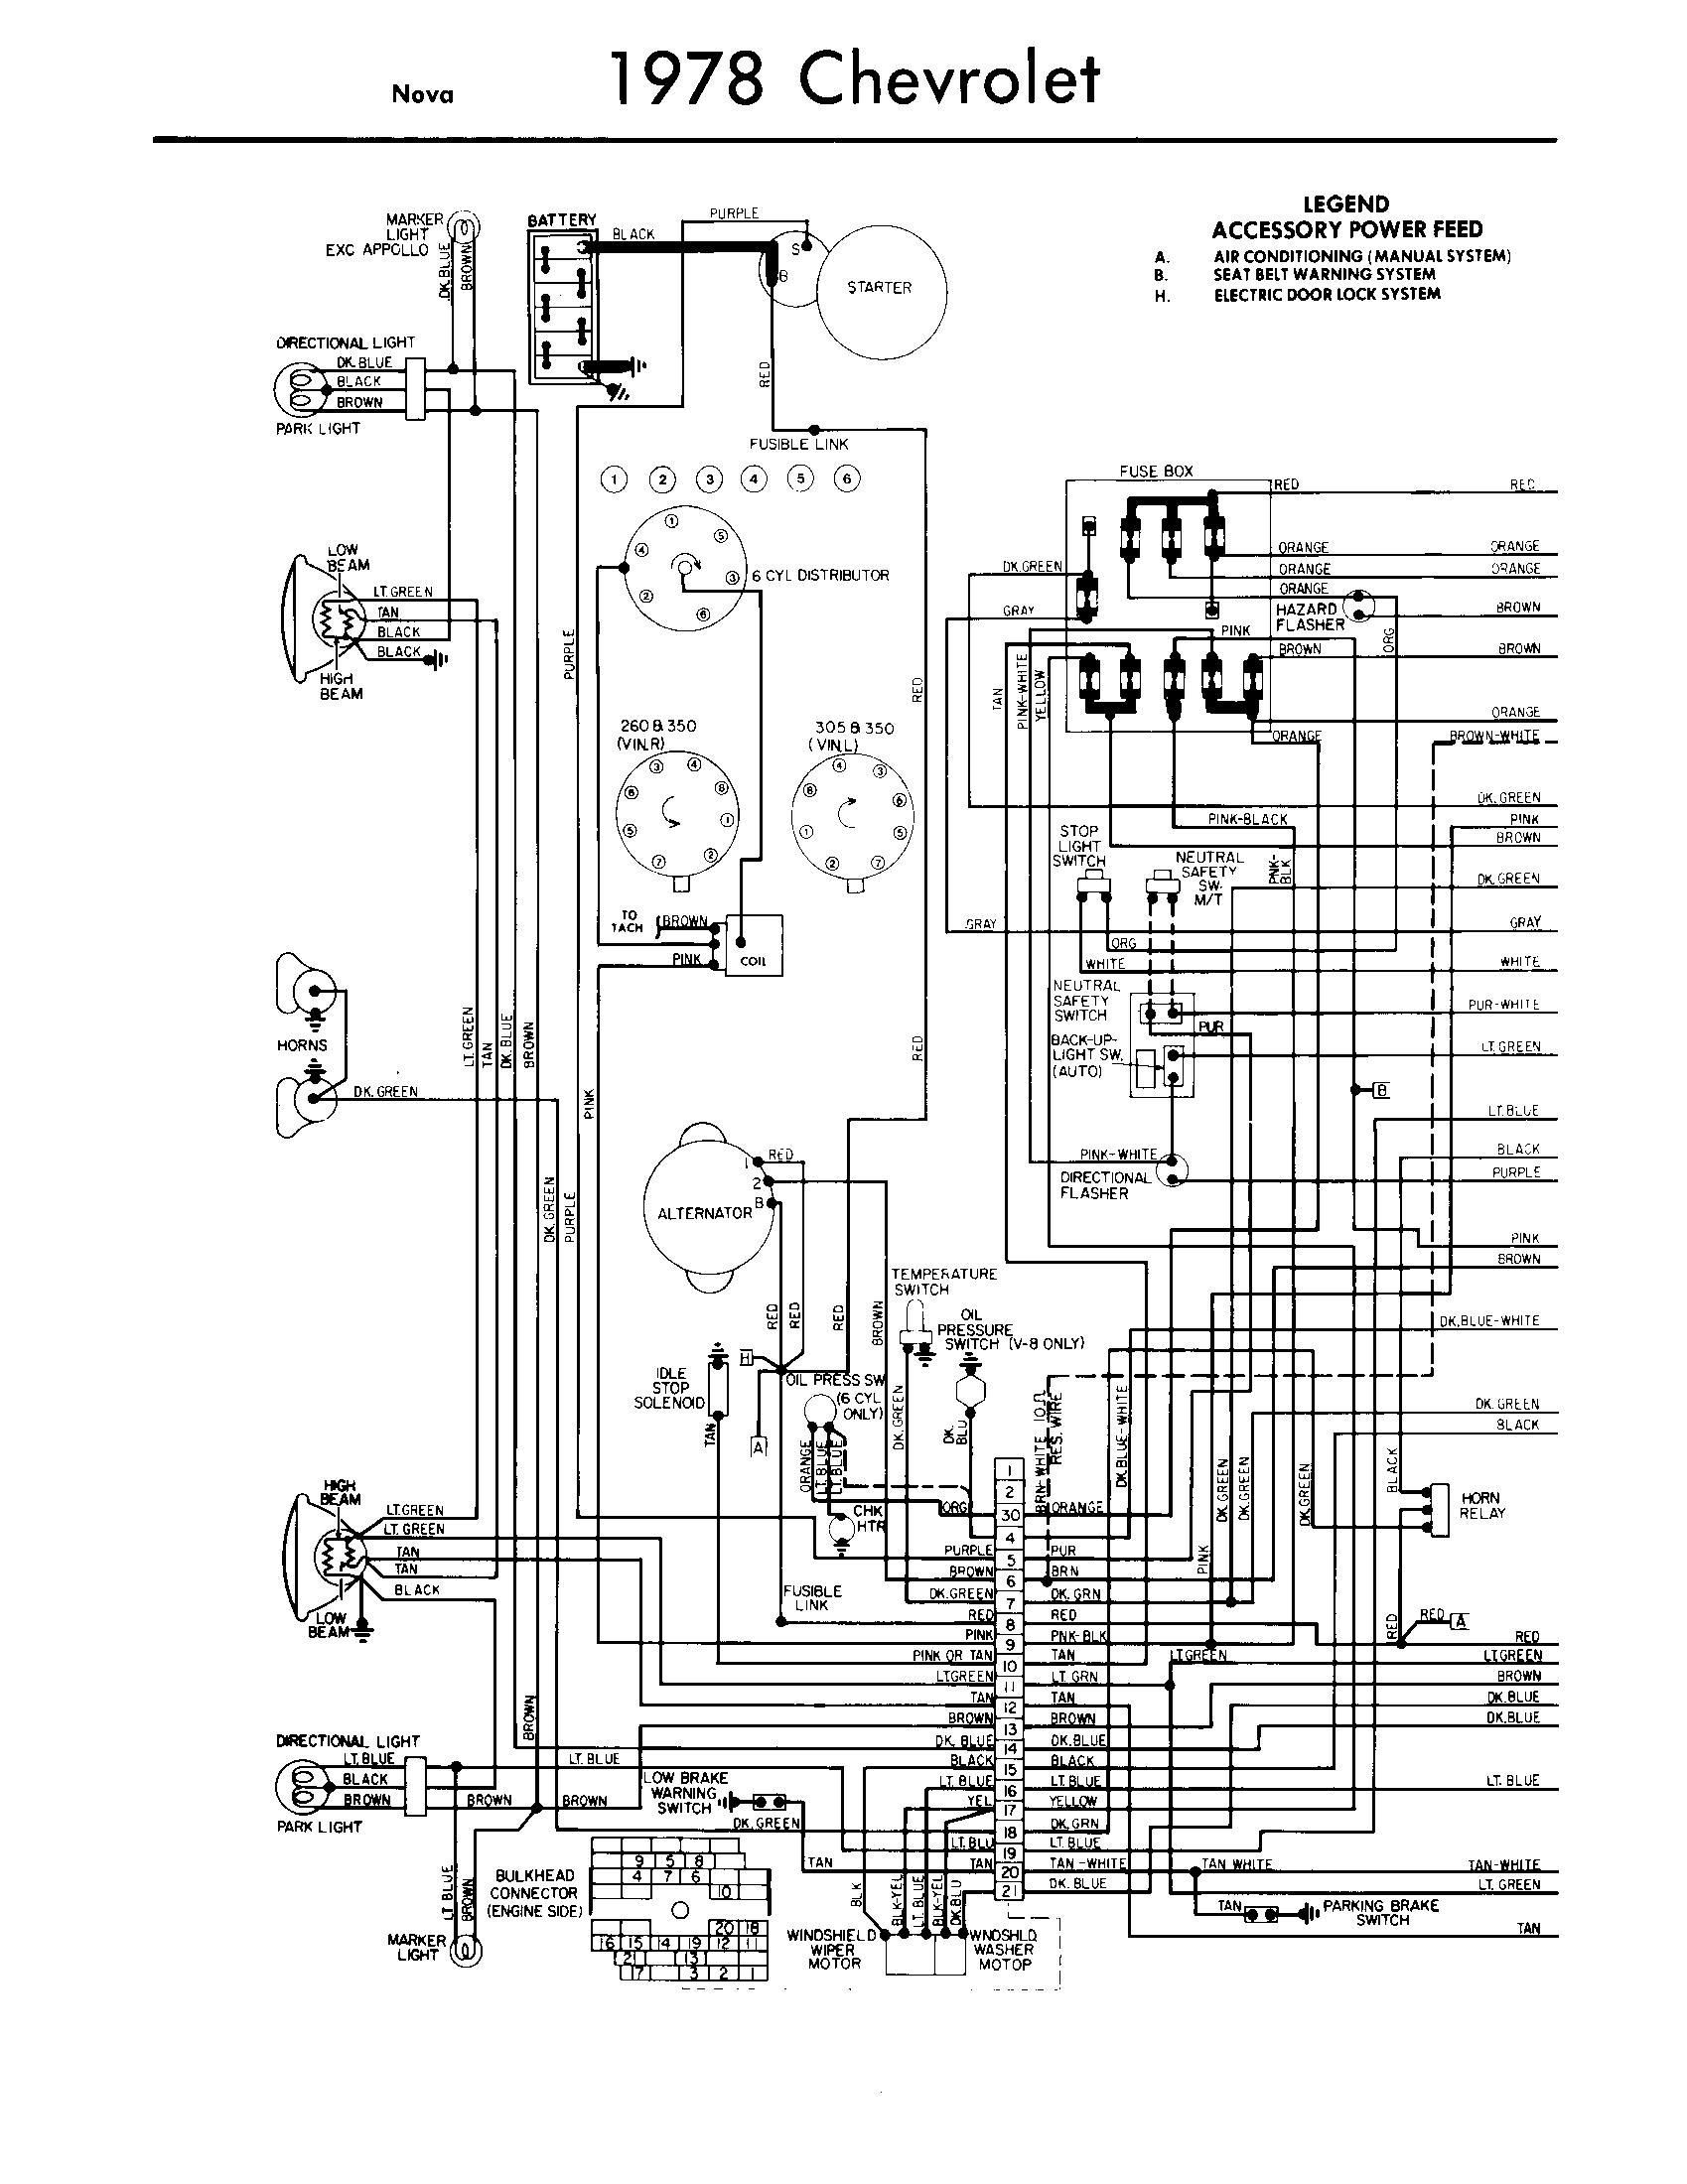 2001 S10 Rear Lights Wiring Diagram  Chevrolet S